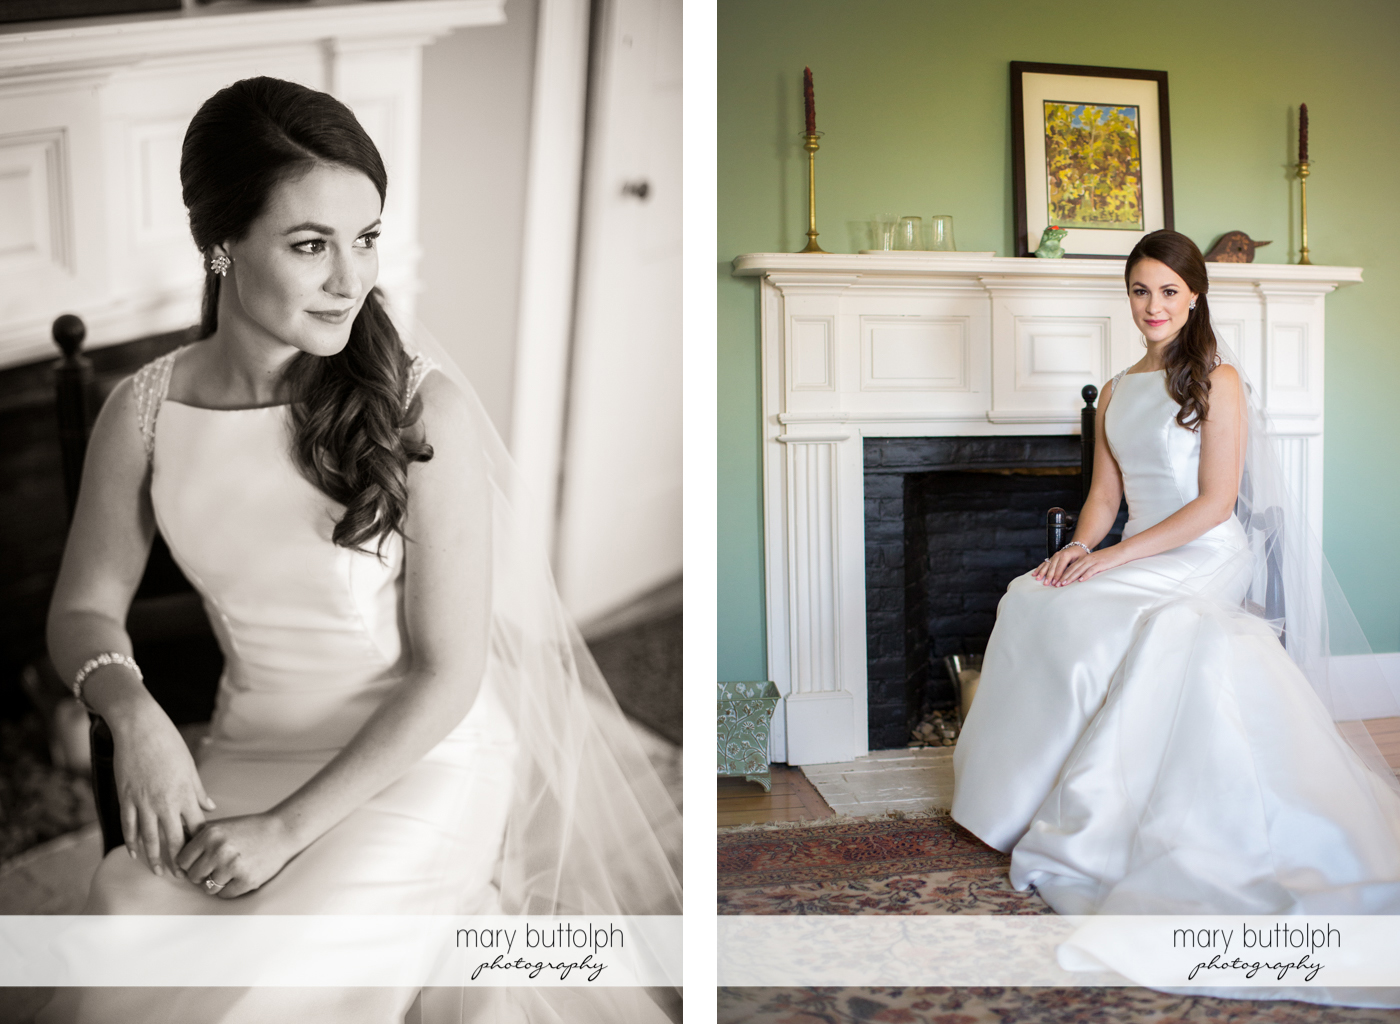 Bride's beauty is captured in these two photos at Frog Pond Bed & Breakfast Wedding